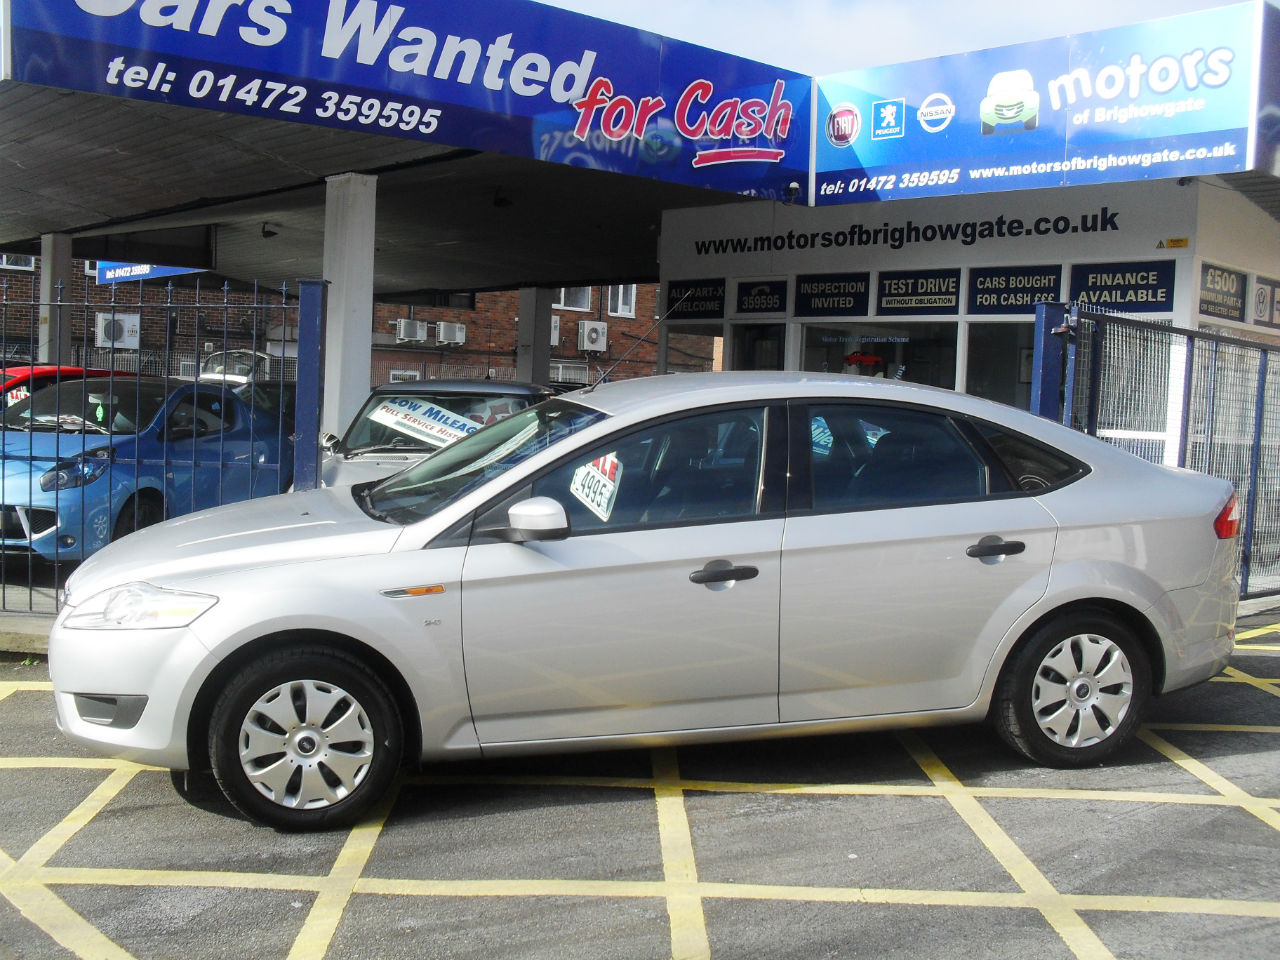 Ford Mondeo 2.0 TDCi Edge 5dr Hatchback Diesel Silver at Motors of Brighowgate Grimsby